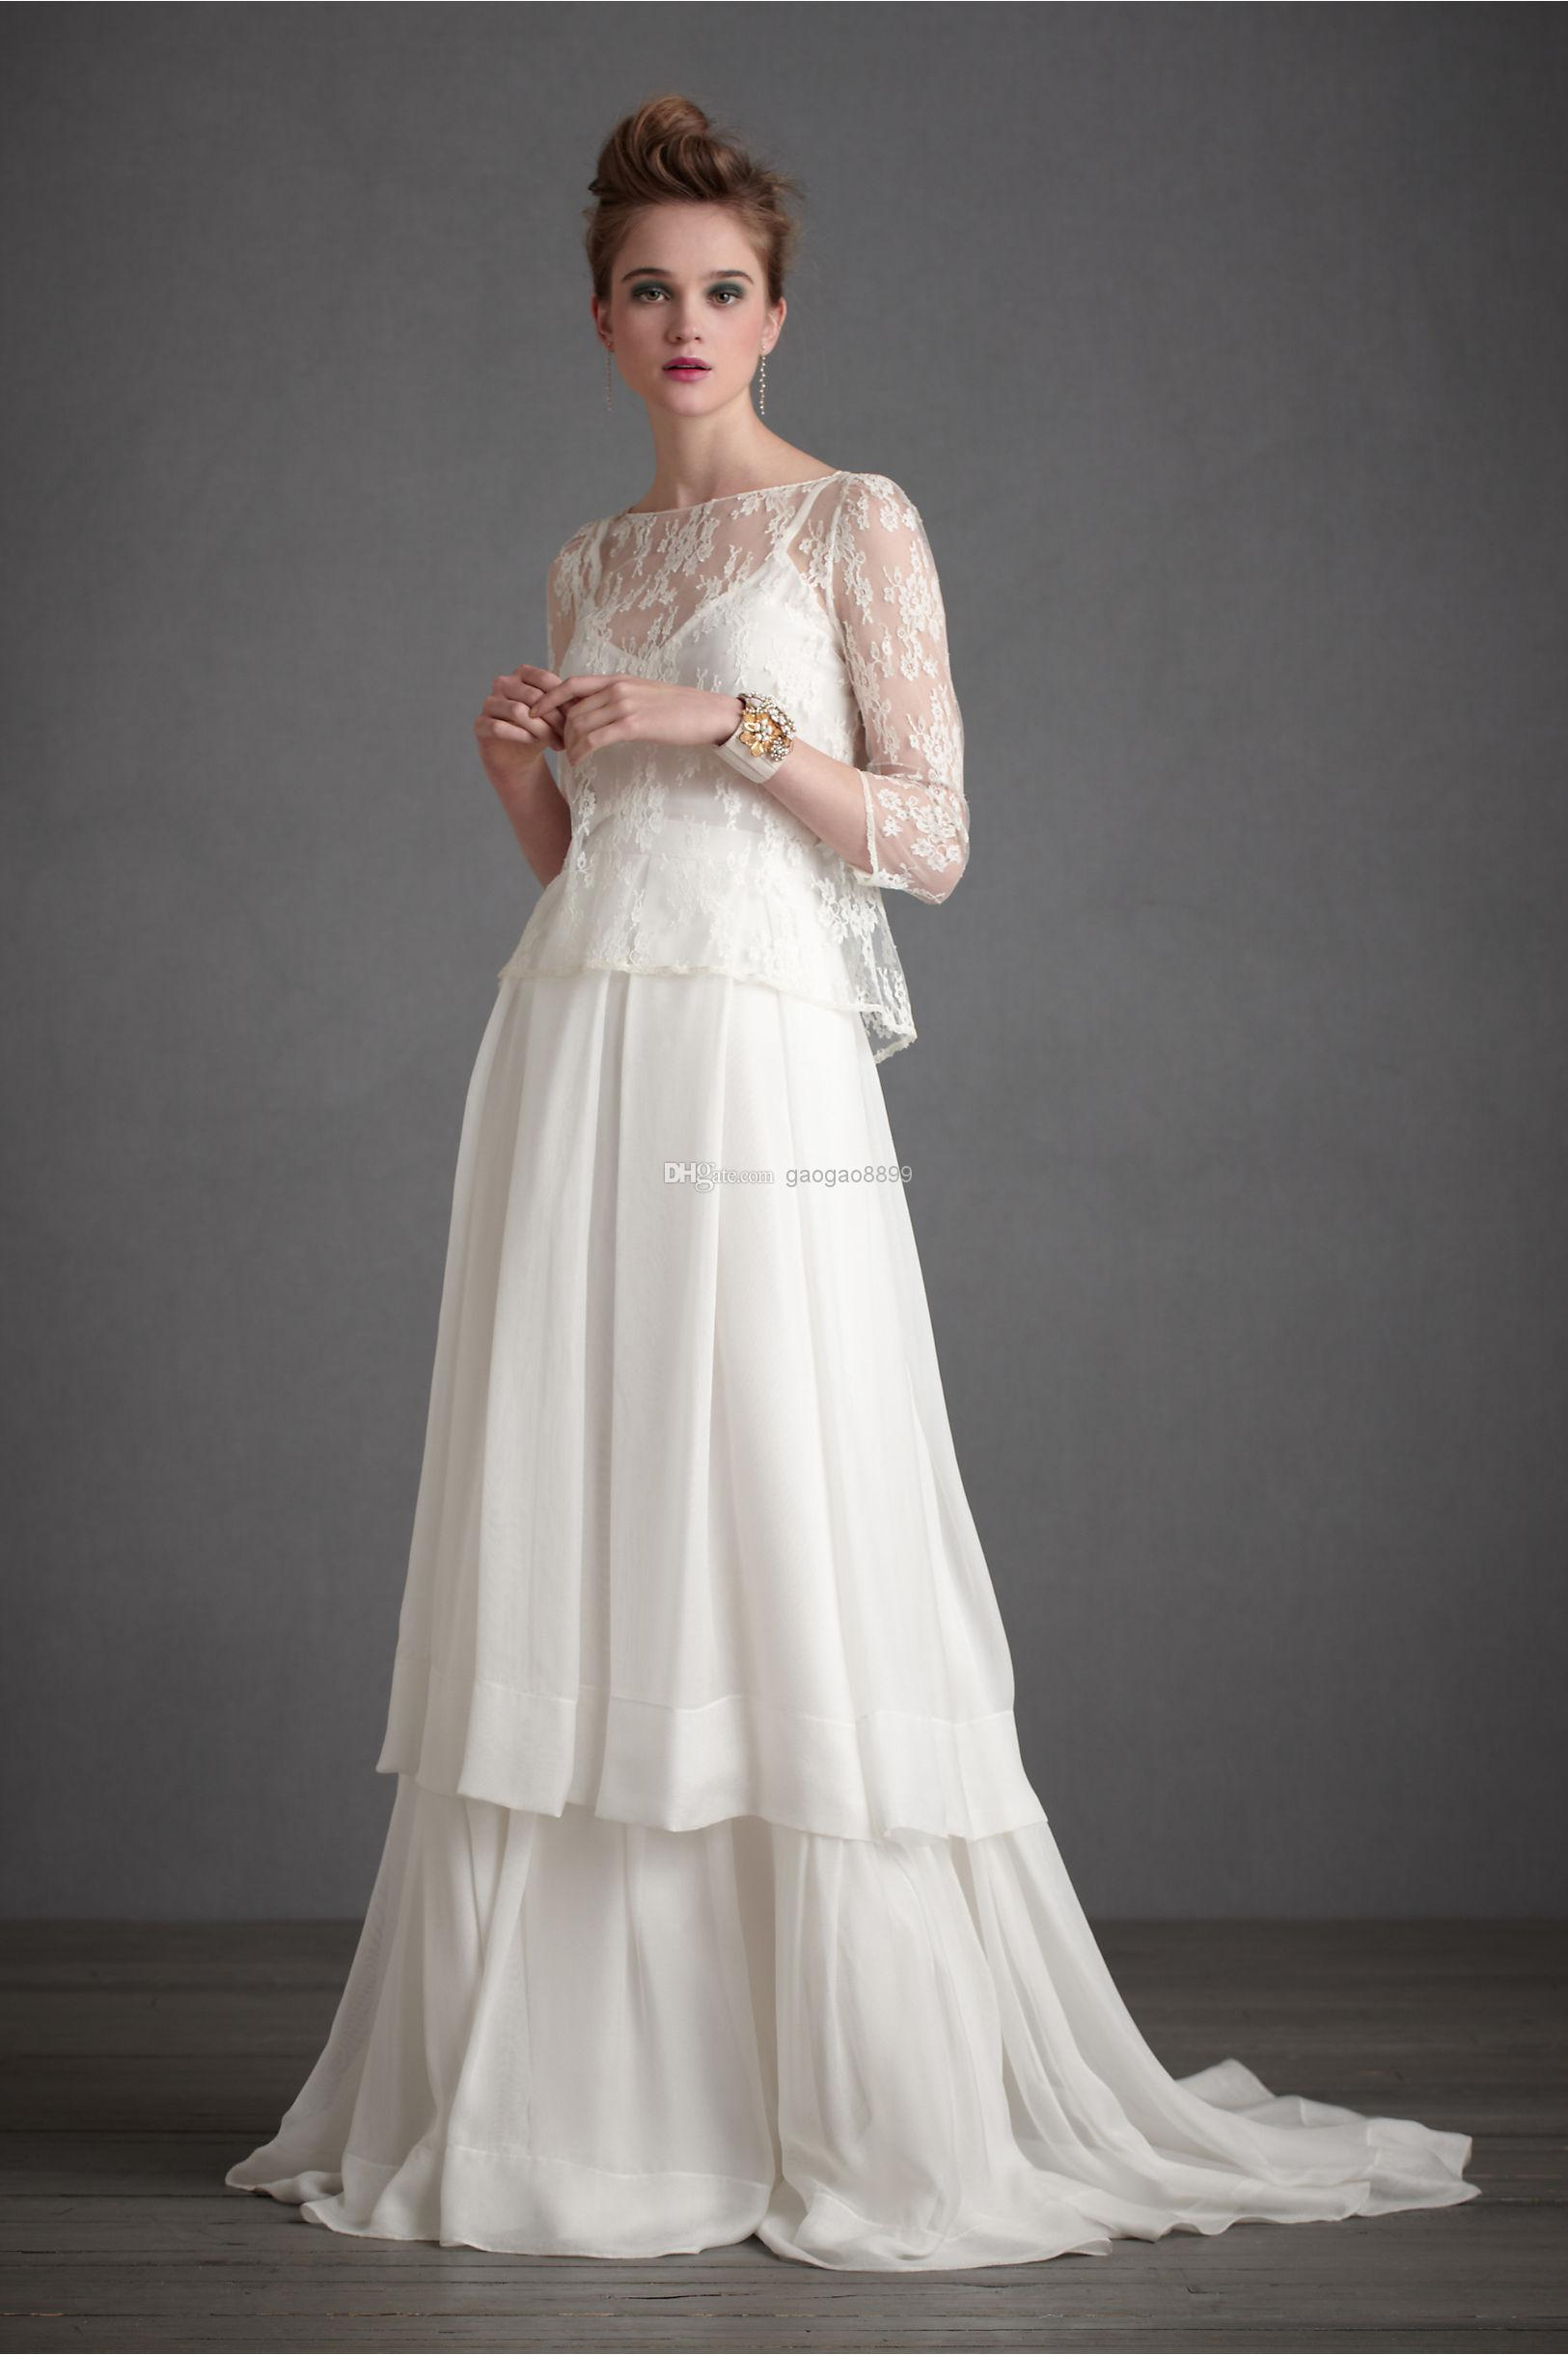 Vintage Wedding Dresses London Cheap - Wedding Dresses In Jax